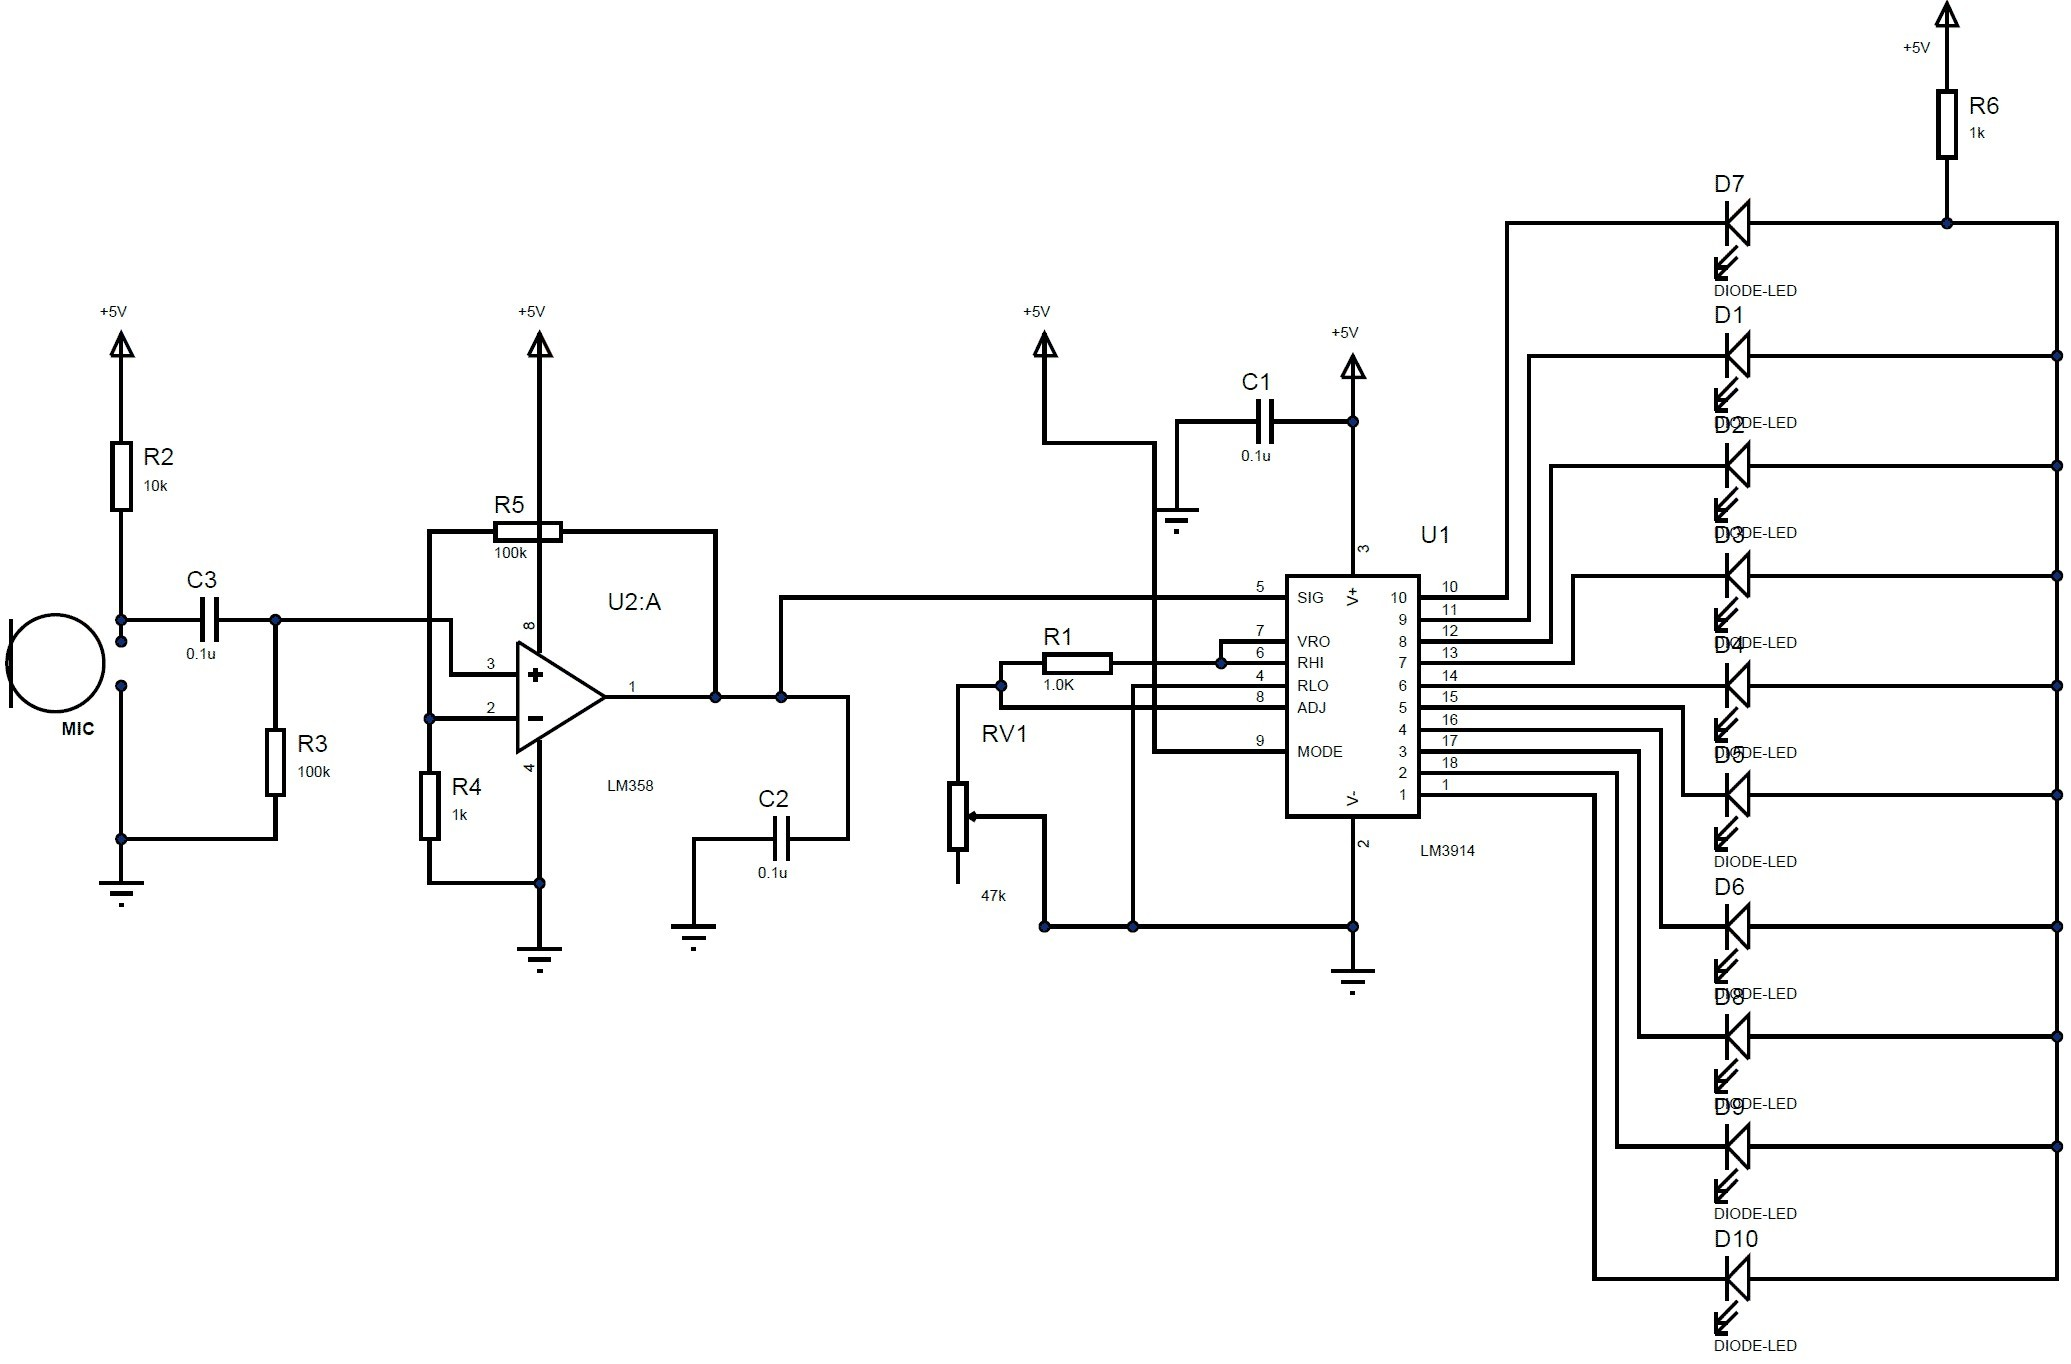 wiring photocells in series wire center u2022 rh leogallery co Yard Light Photocell Diagram Photocell Sensor Circuit Diagram